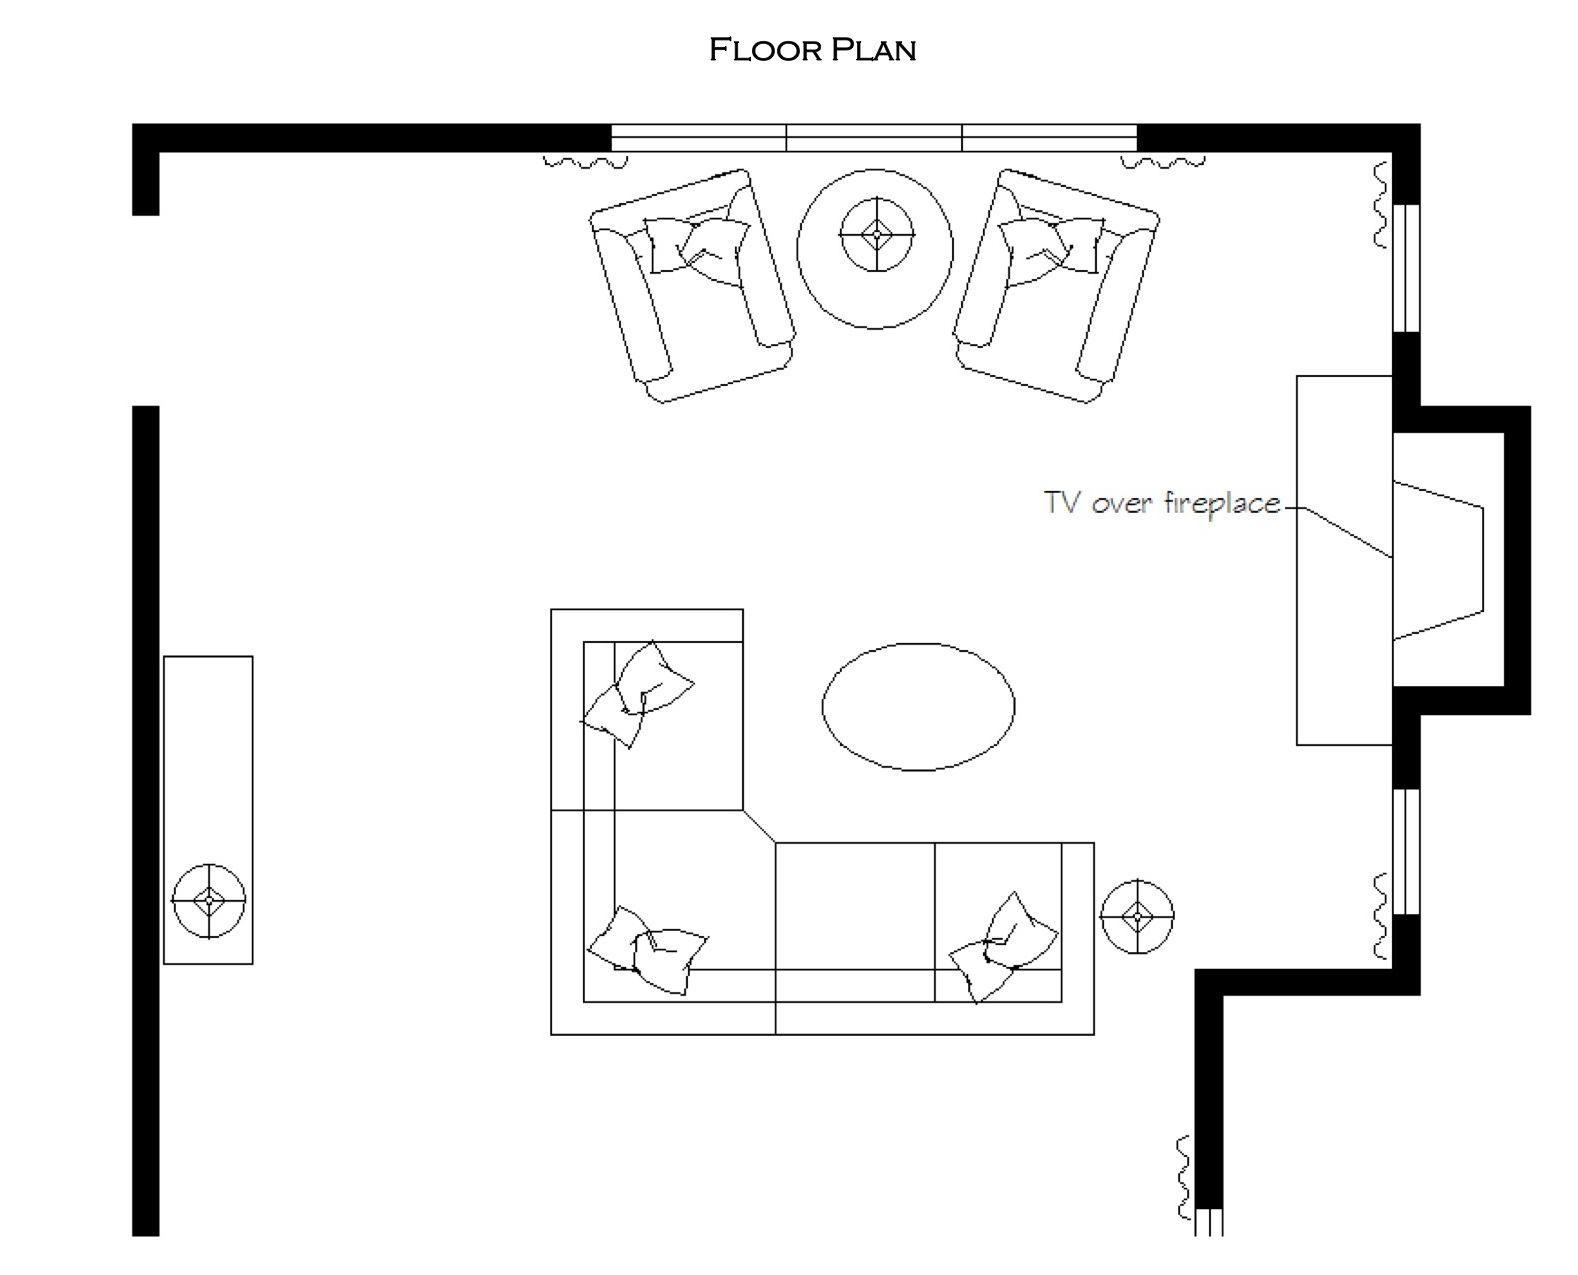 Living room floor plan sectional tv over fireplace for Living room floor plan